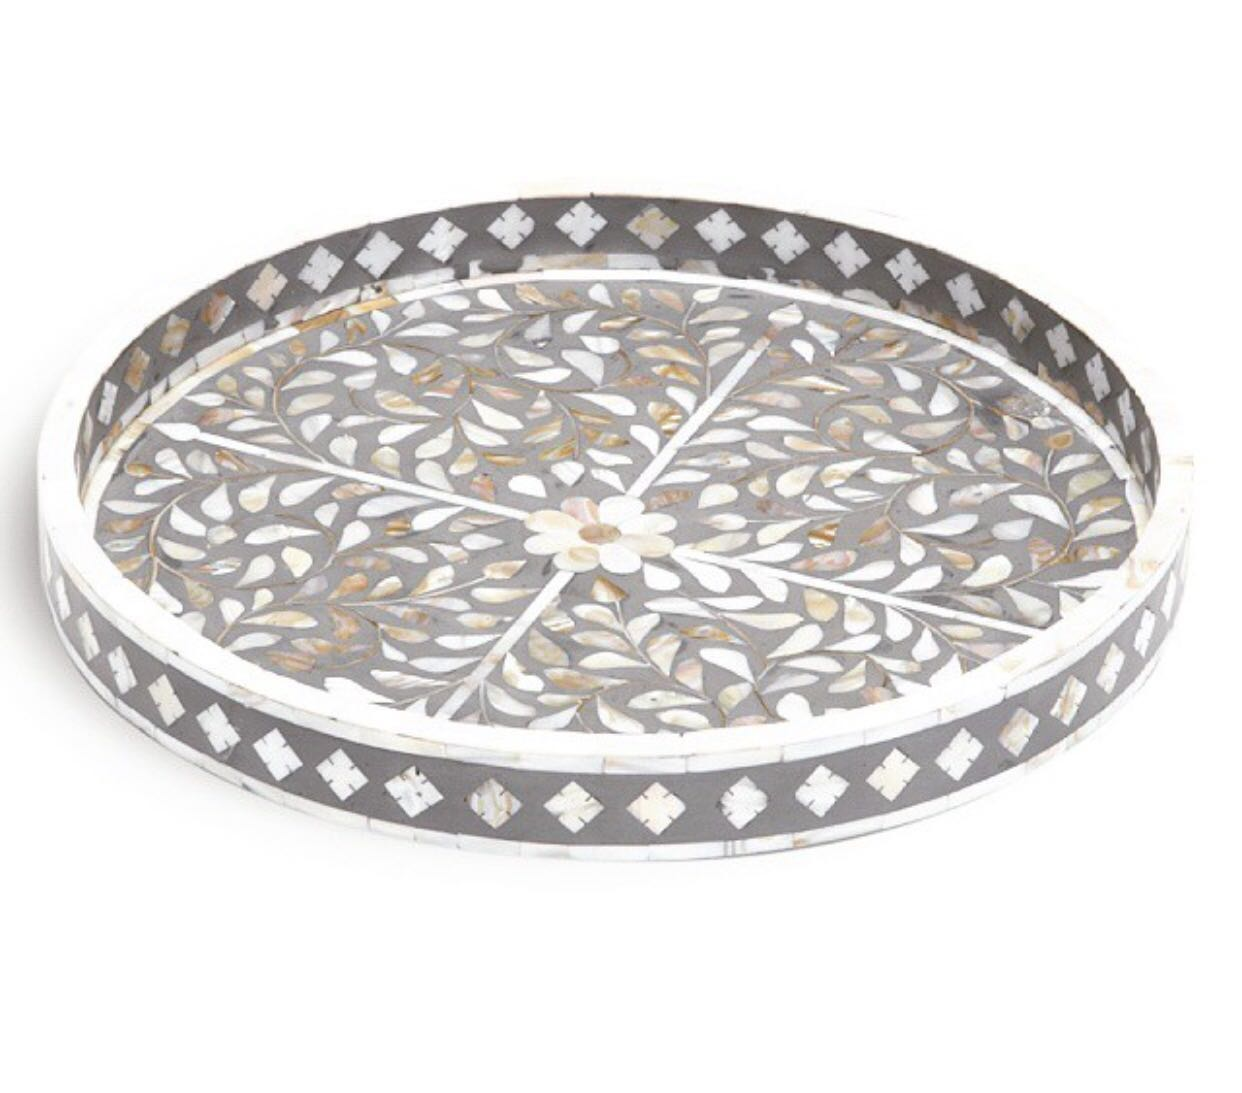 Grey Mother of Pearl Bone Inlay Tray by Peacocks and Paisley, a Trays for sale on Style Sourcebook